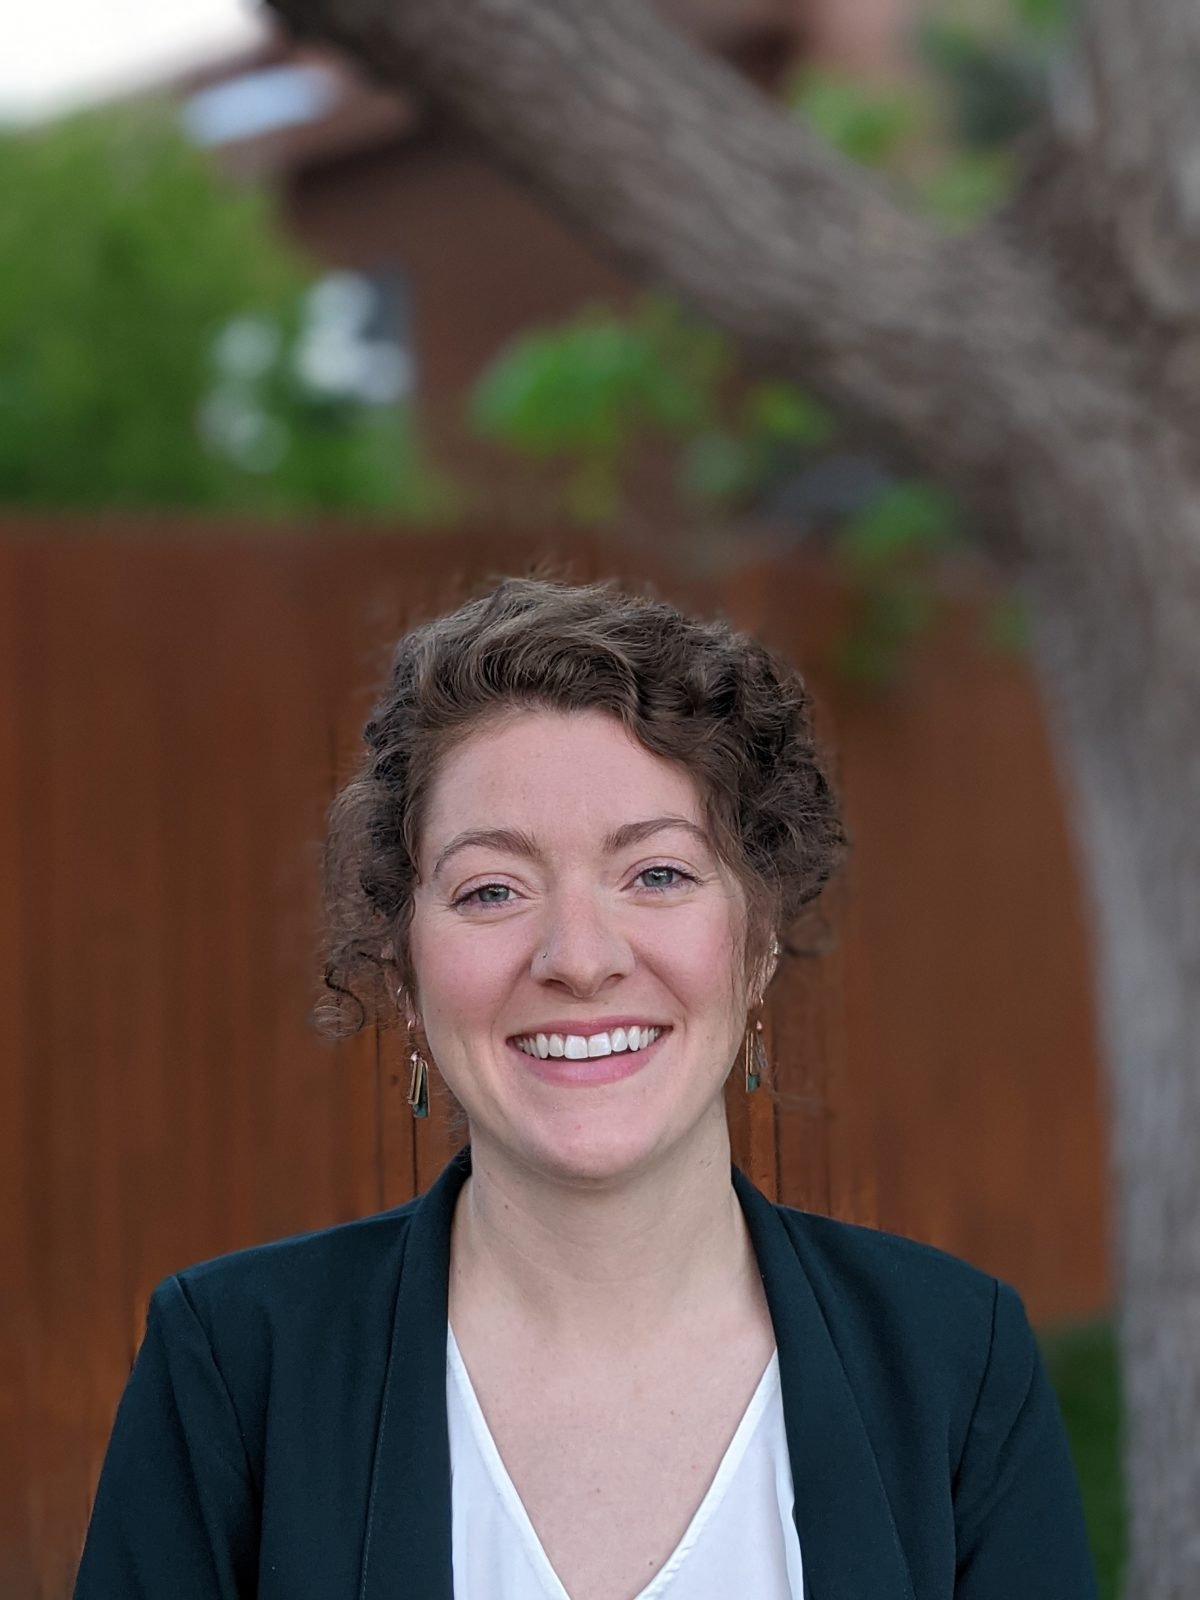 Picture of Molly O'Hara. Molly is a person with pale skin and brown curly hair which is short. She is wearing earrings, a dark blazer, and a white shirt. She is smiling. The background is blurry but shows a tree and the side of a building.